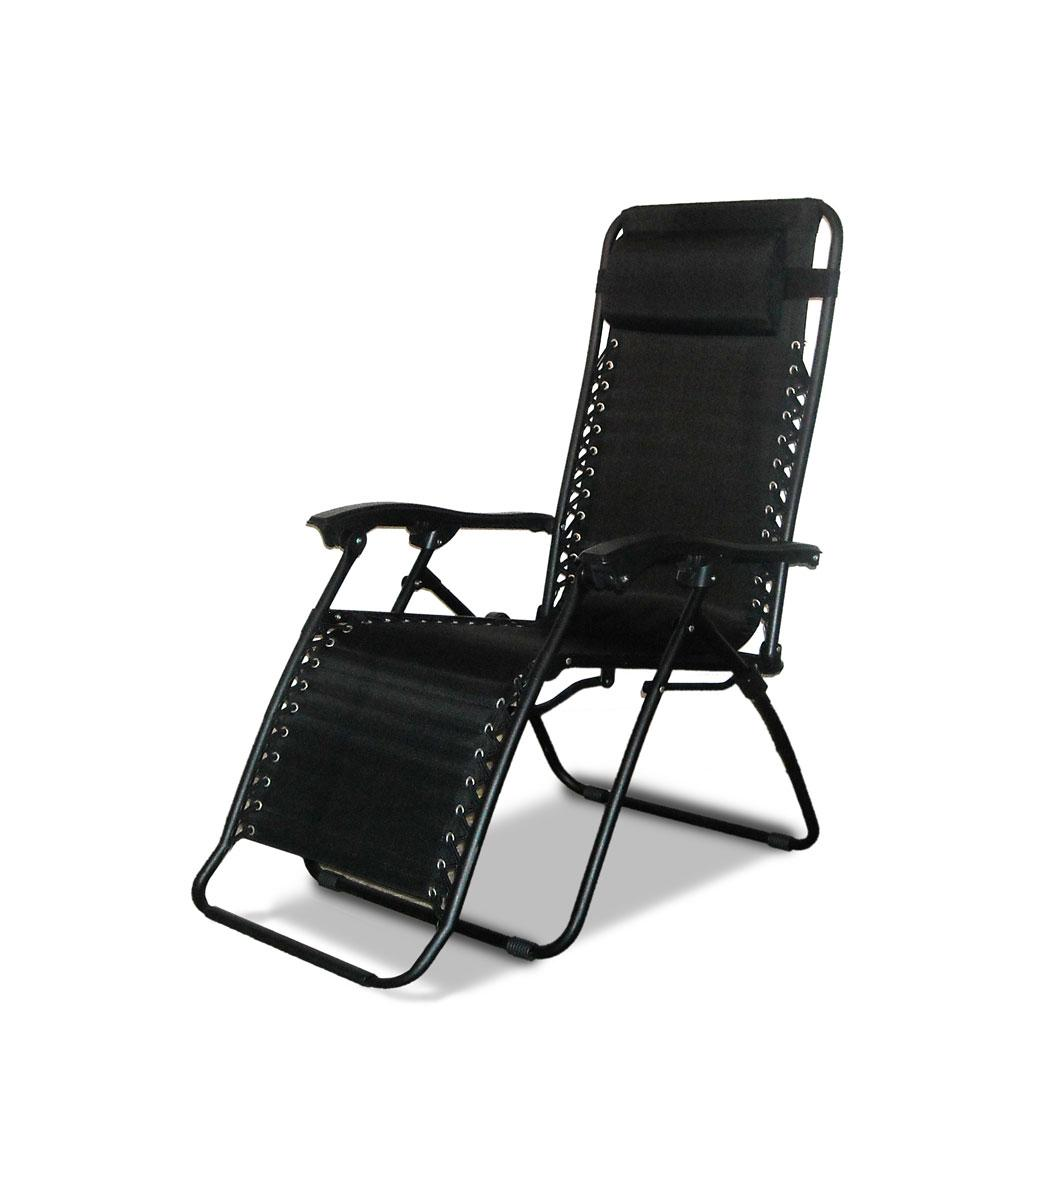 Shop Caravan Canopy Black Zero Gravity Chair Free